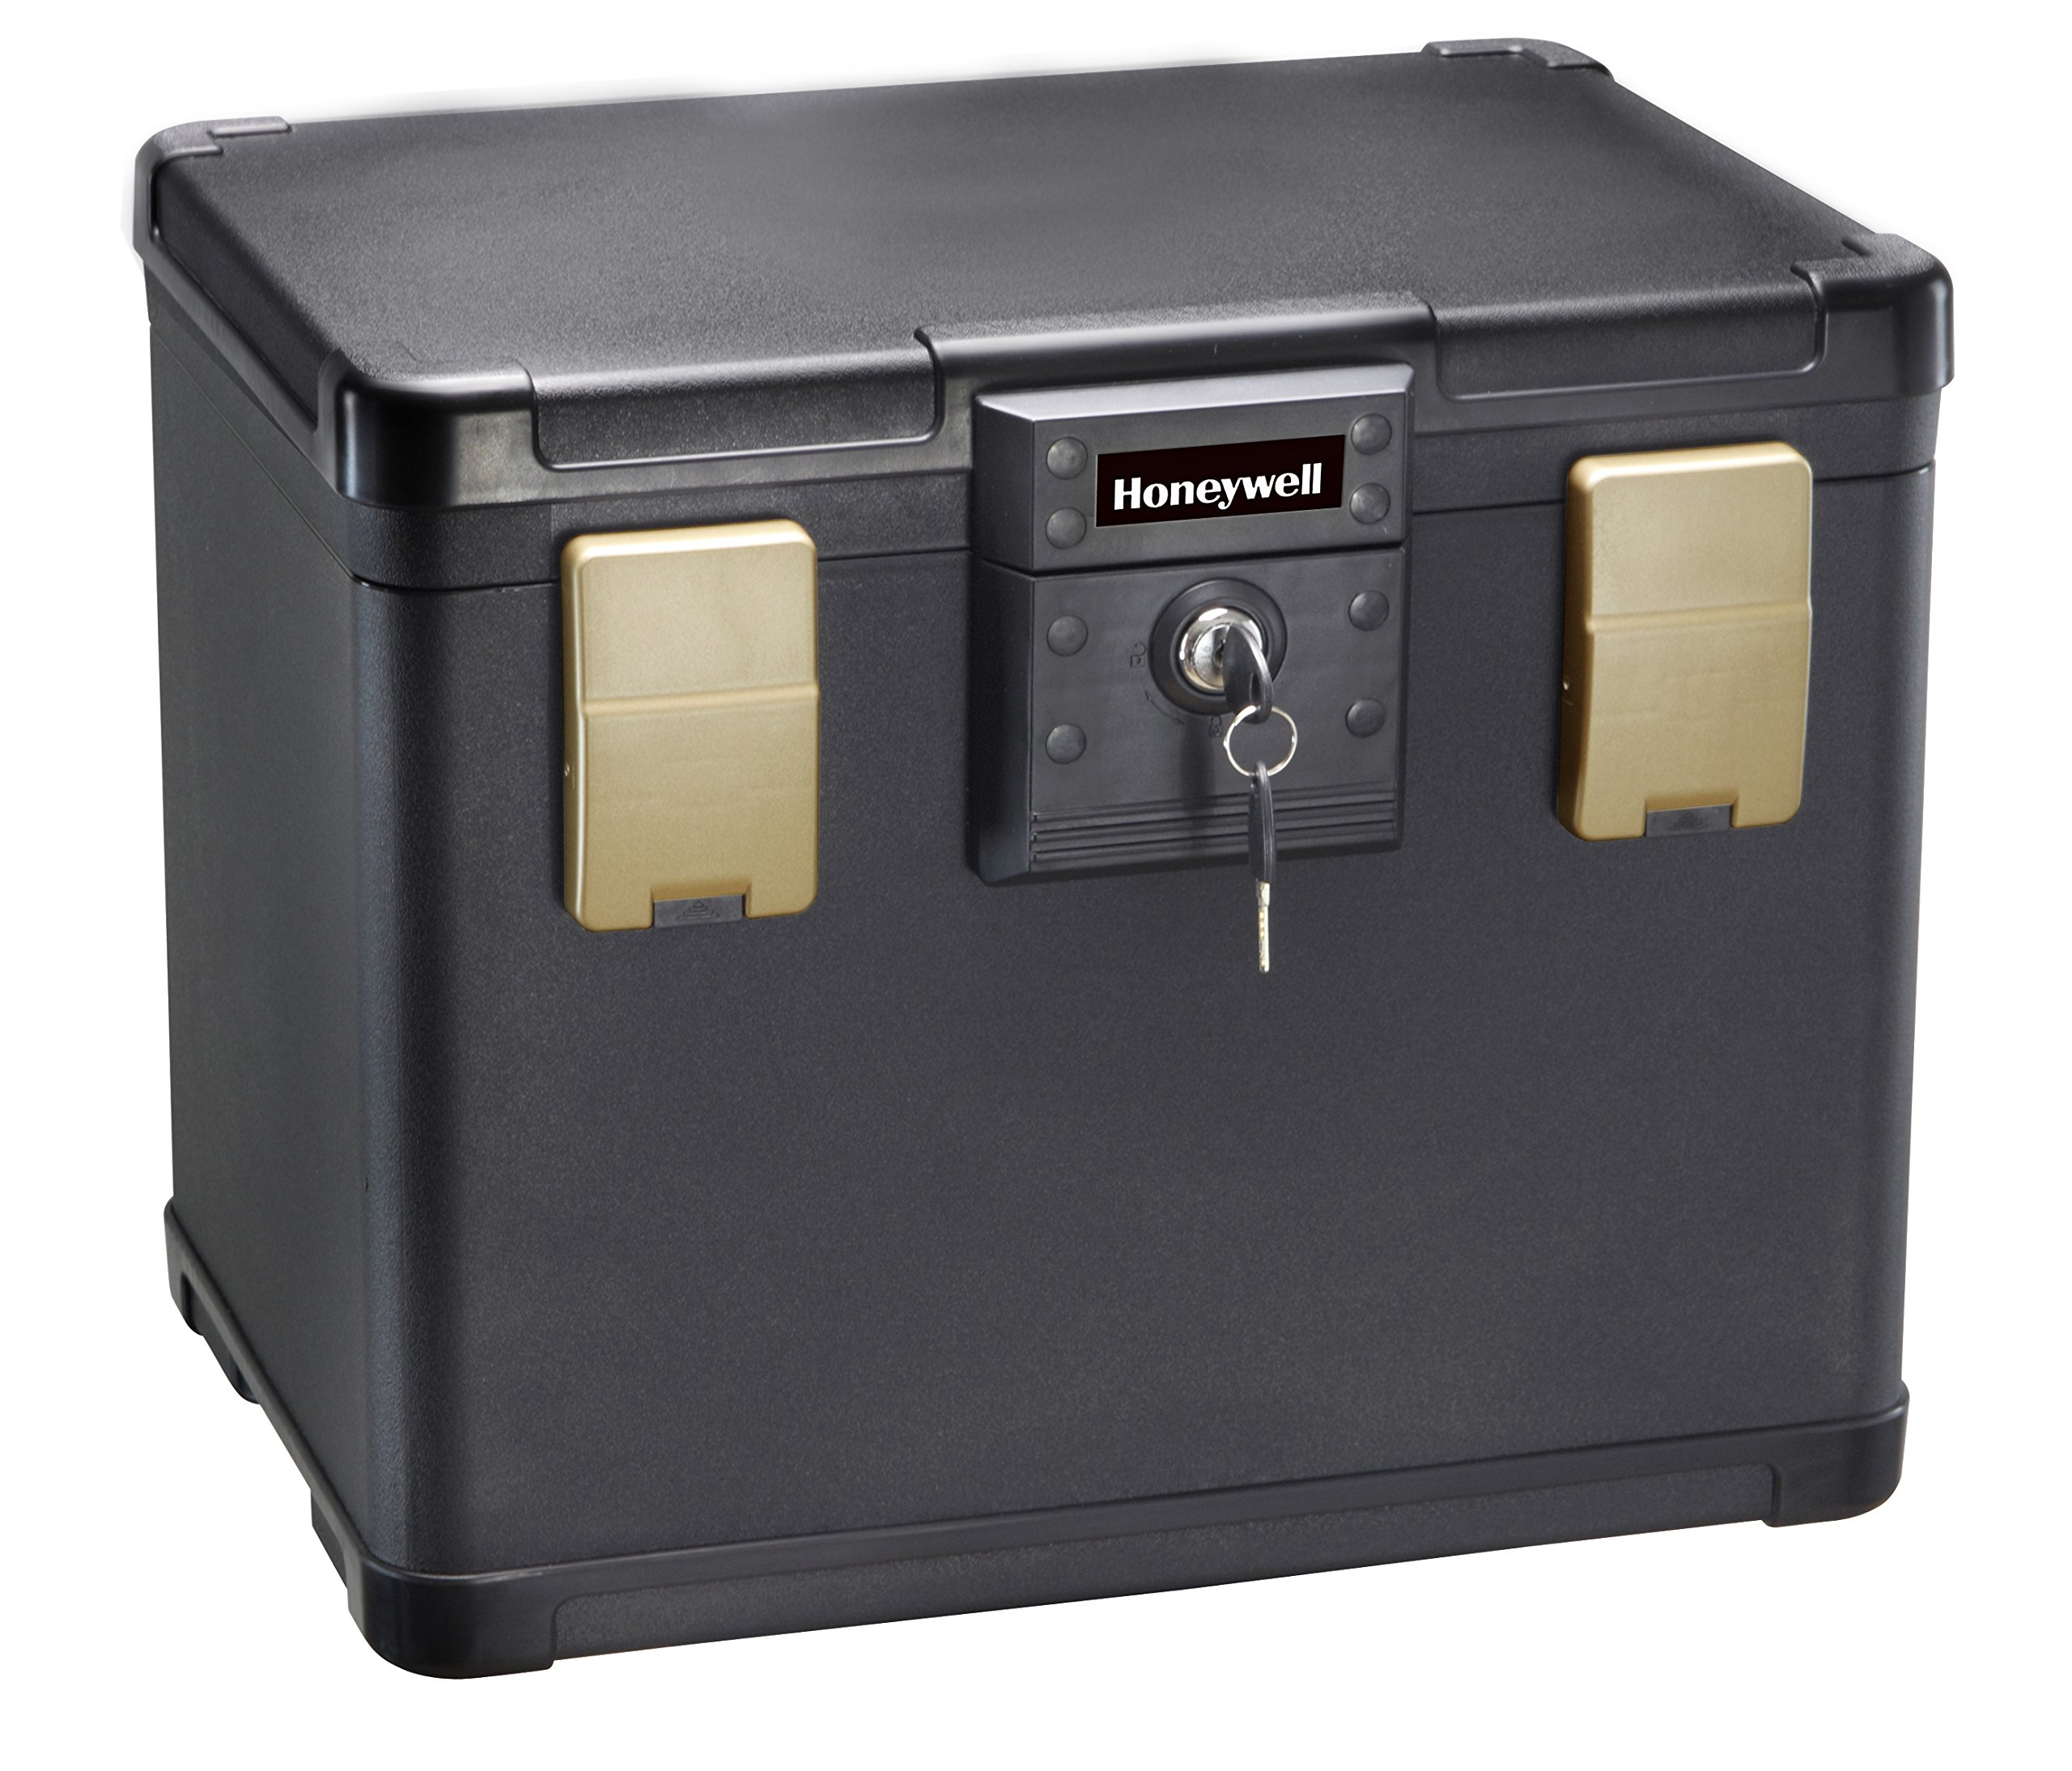 Honeywell Safes & Door Locks - 30 Minute Fire Safe Waterproof Filing Safe Box Chest (fits Letter and A4 Files), Medium, 1106 by Honeywell Safes & Door Locks